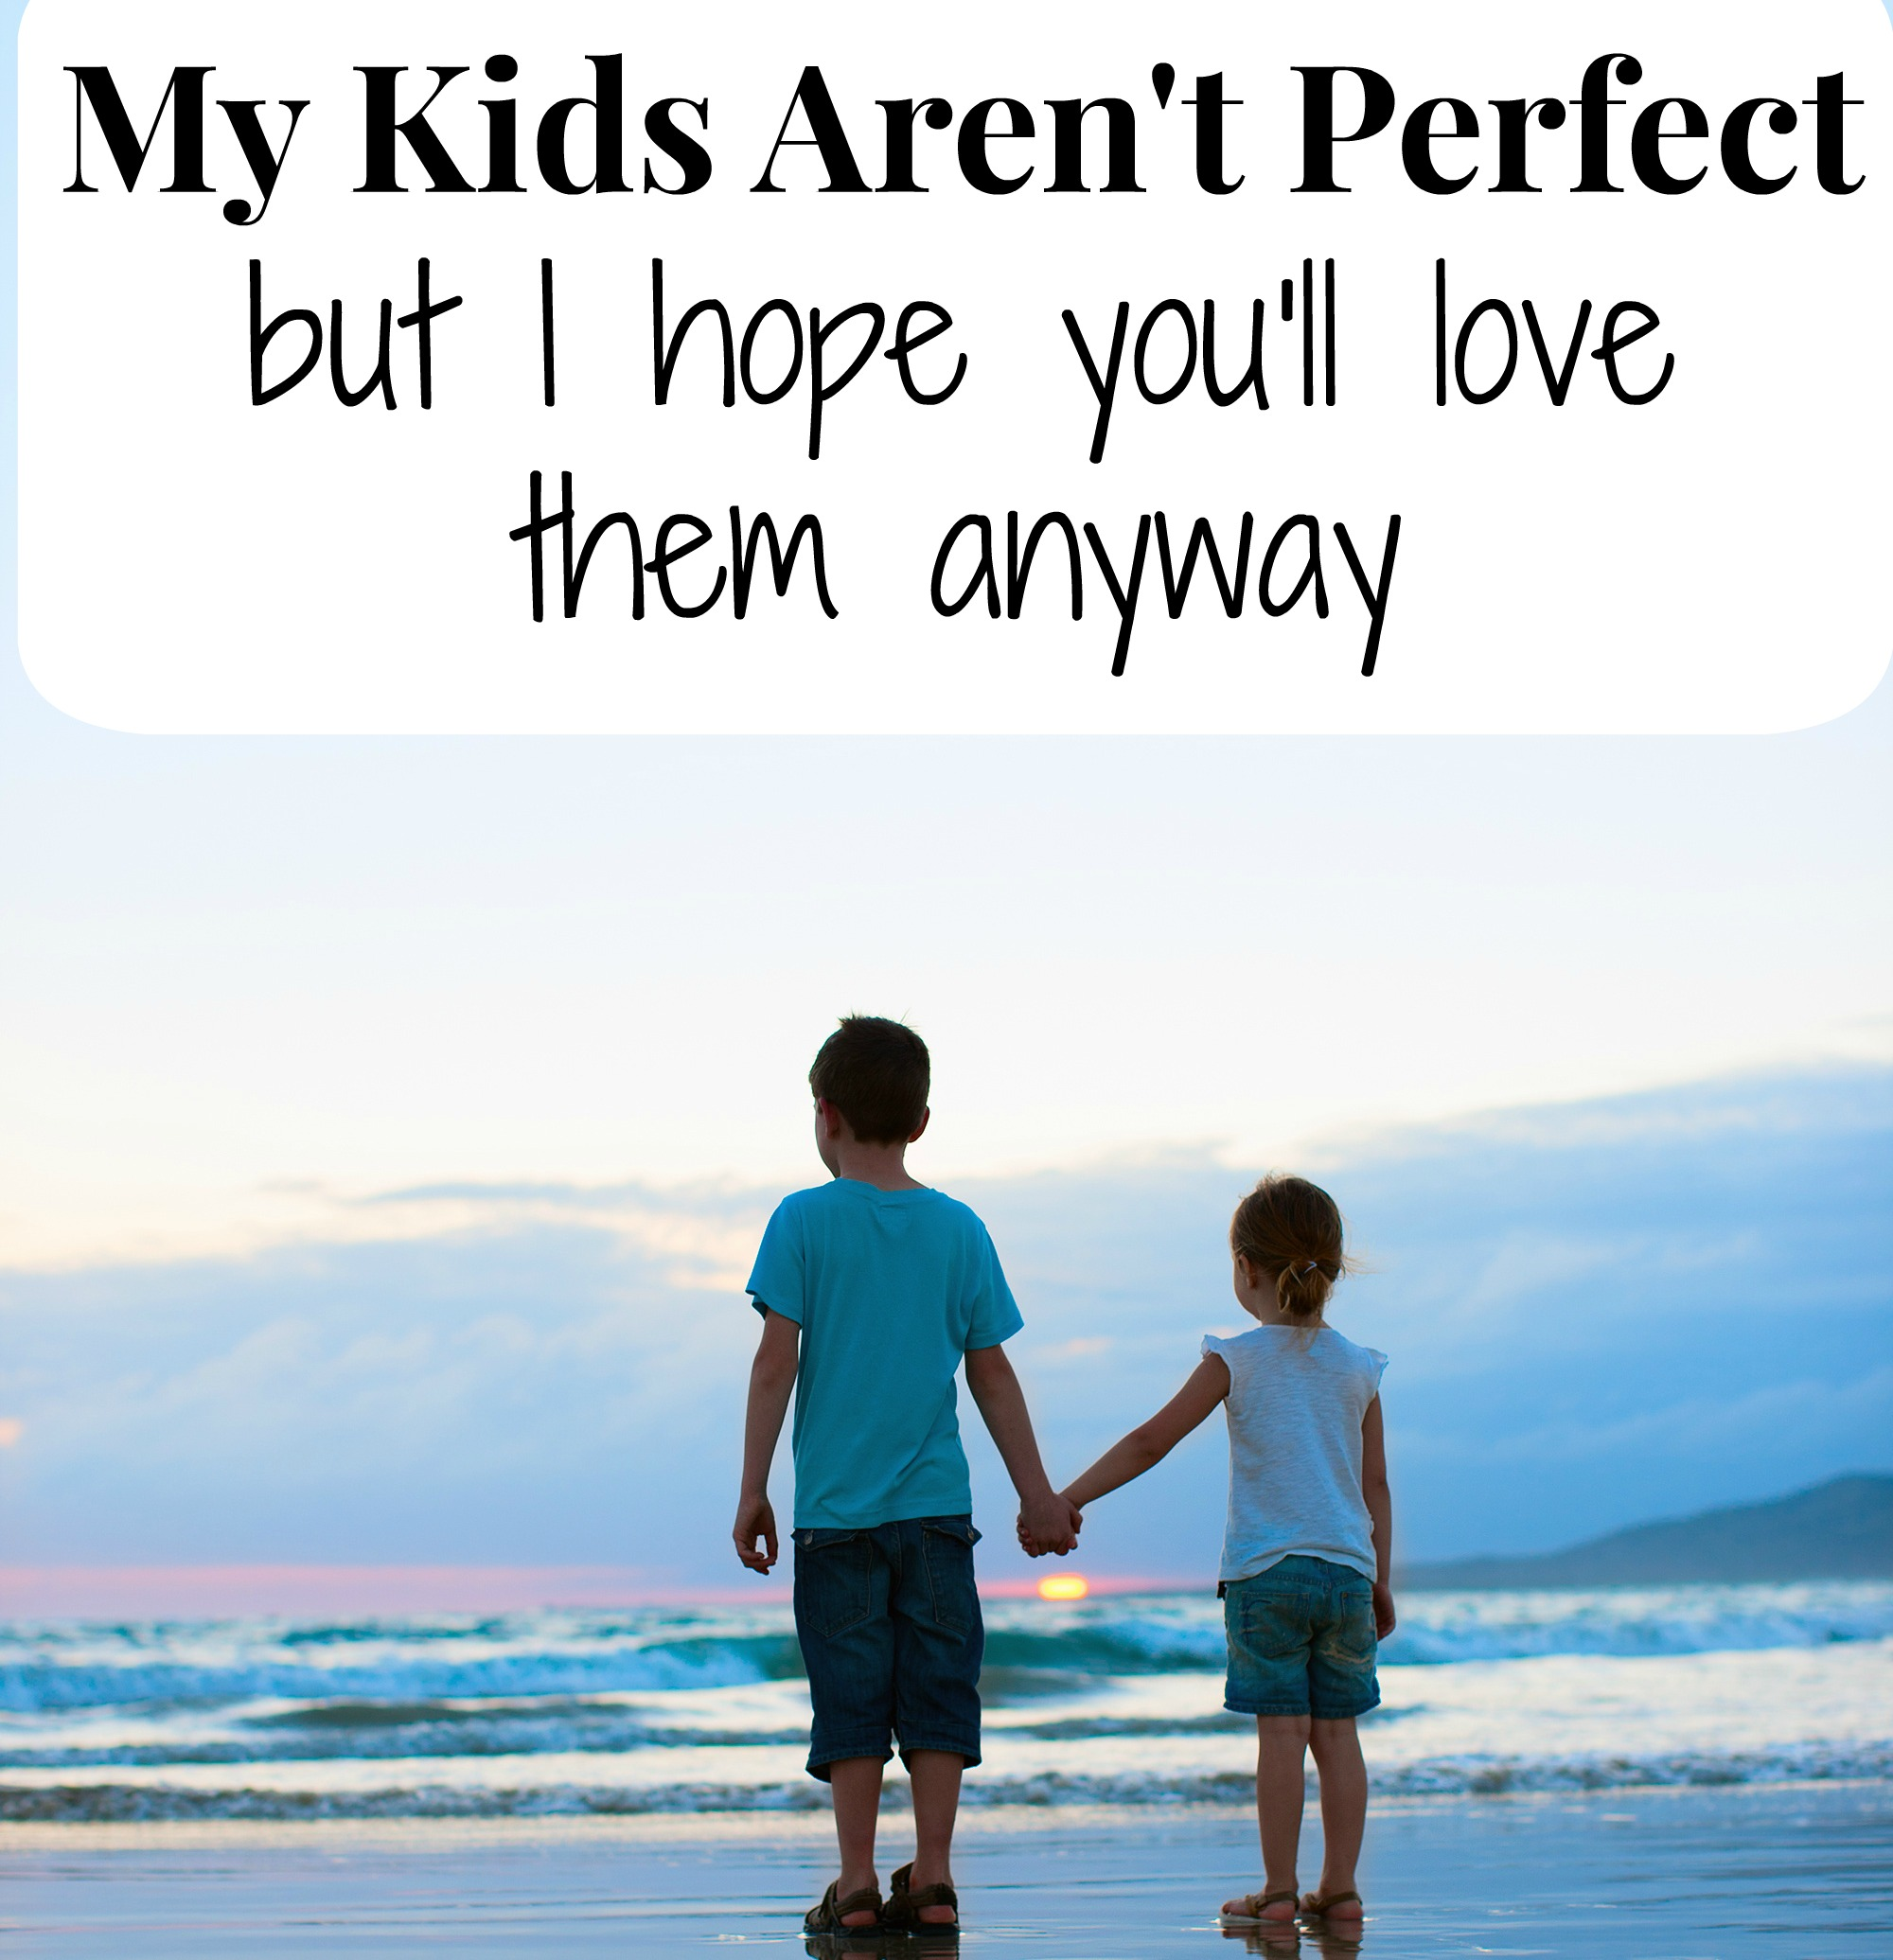 My Children Aren't Perfect, I Hope You'll Love Them Anyway